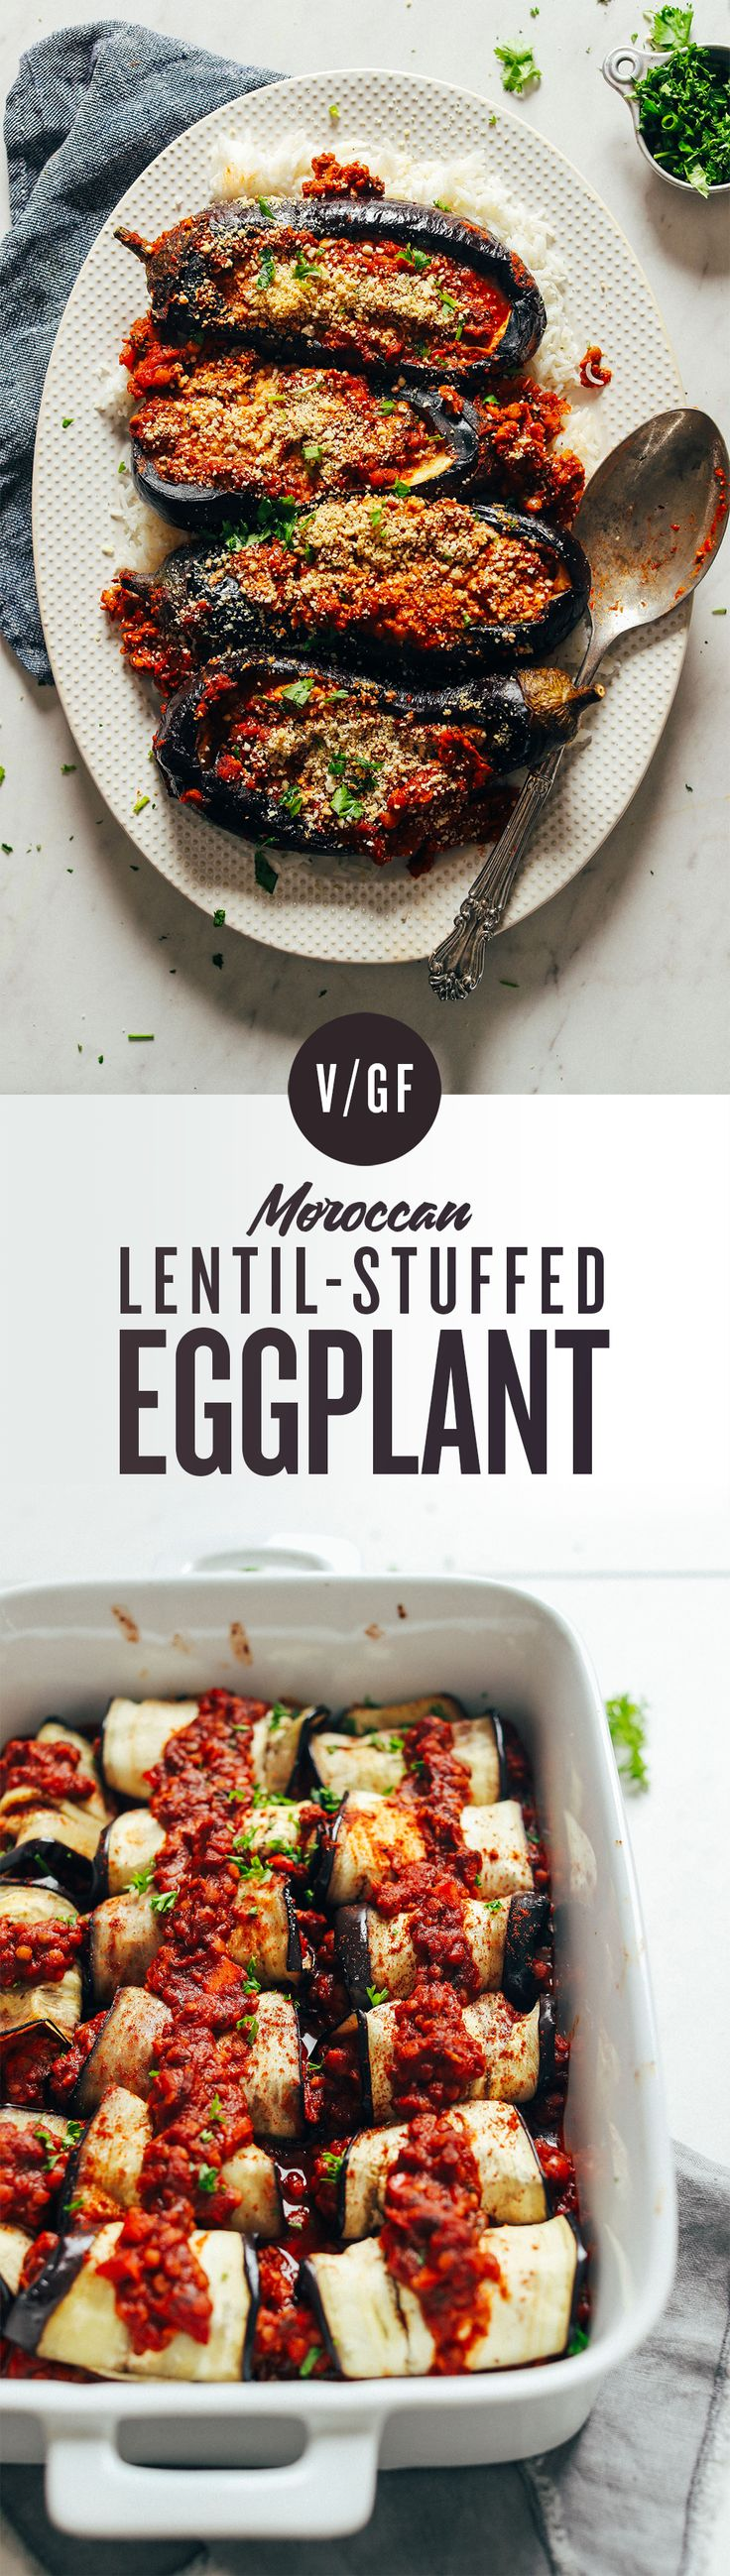 Moroccan Lentil-Stuffed Egg Plant For more pins like this, follow us @juicemetoo!